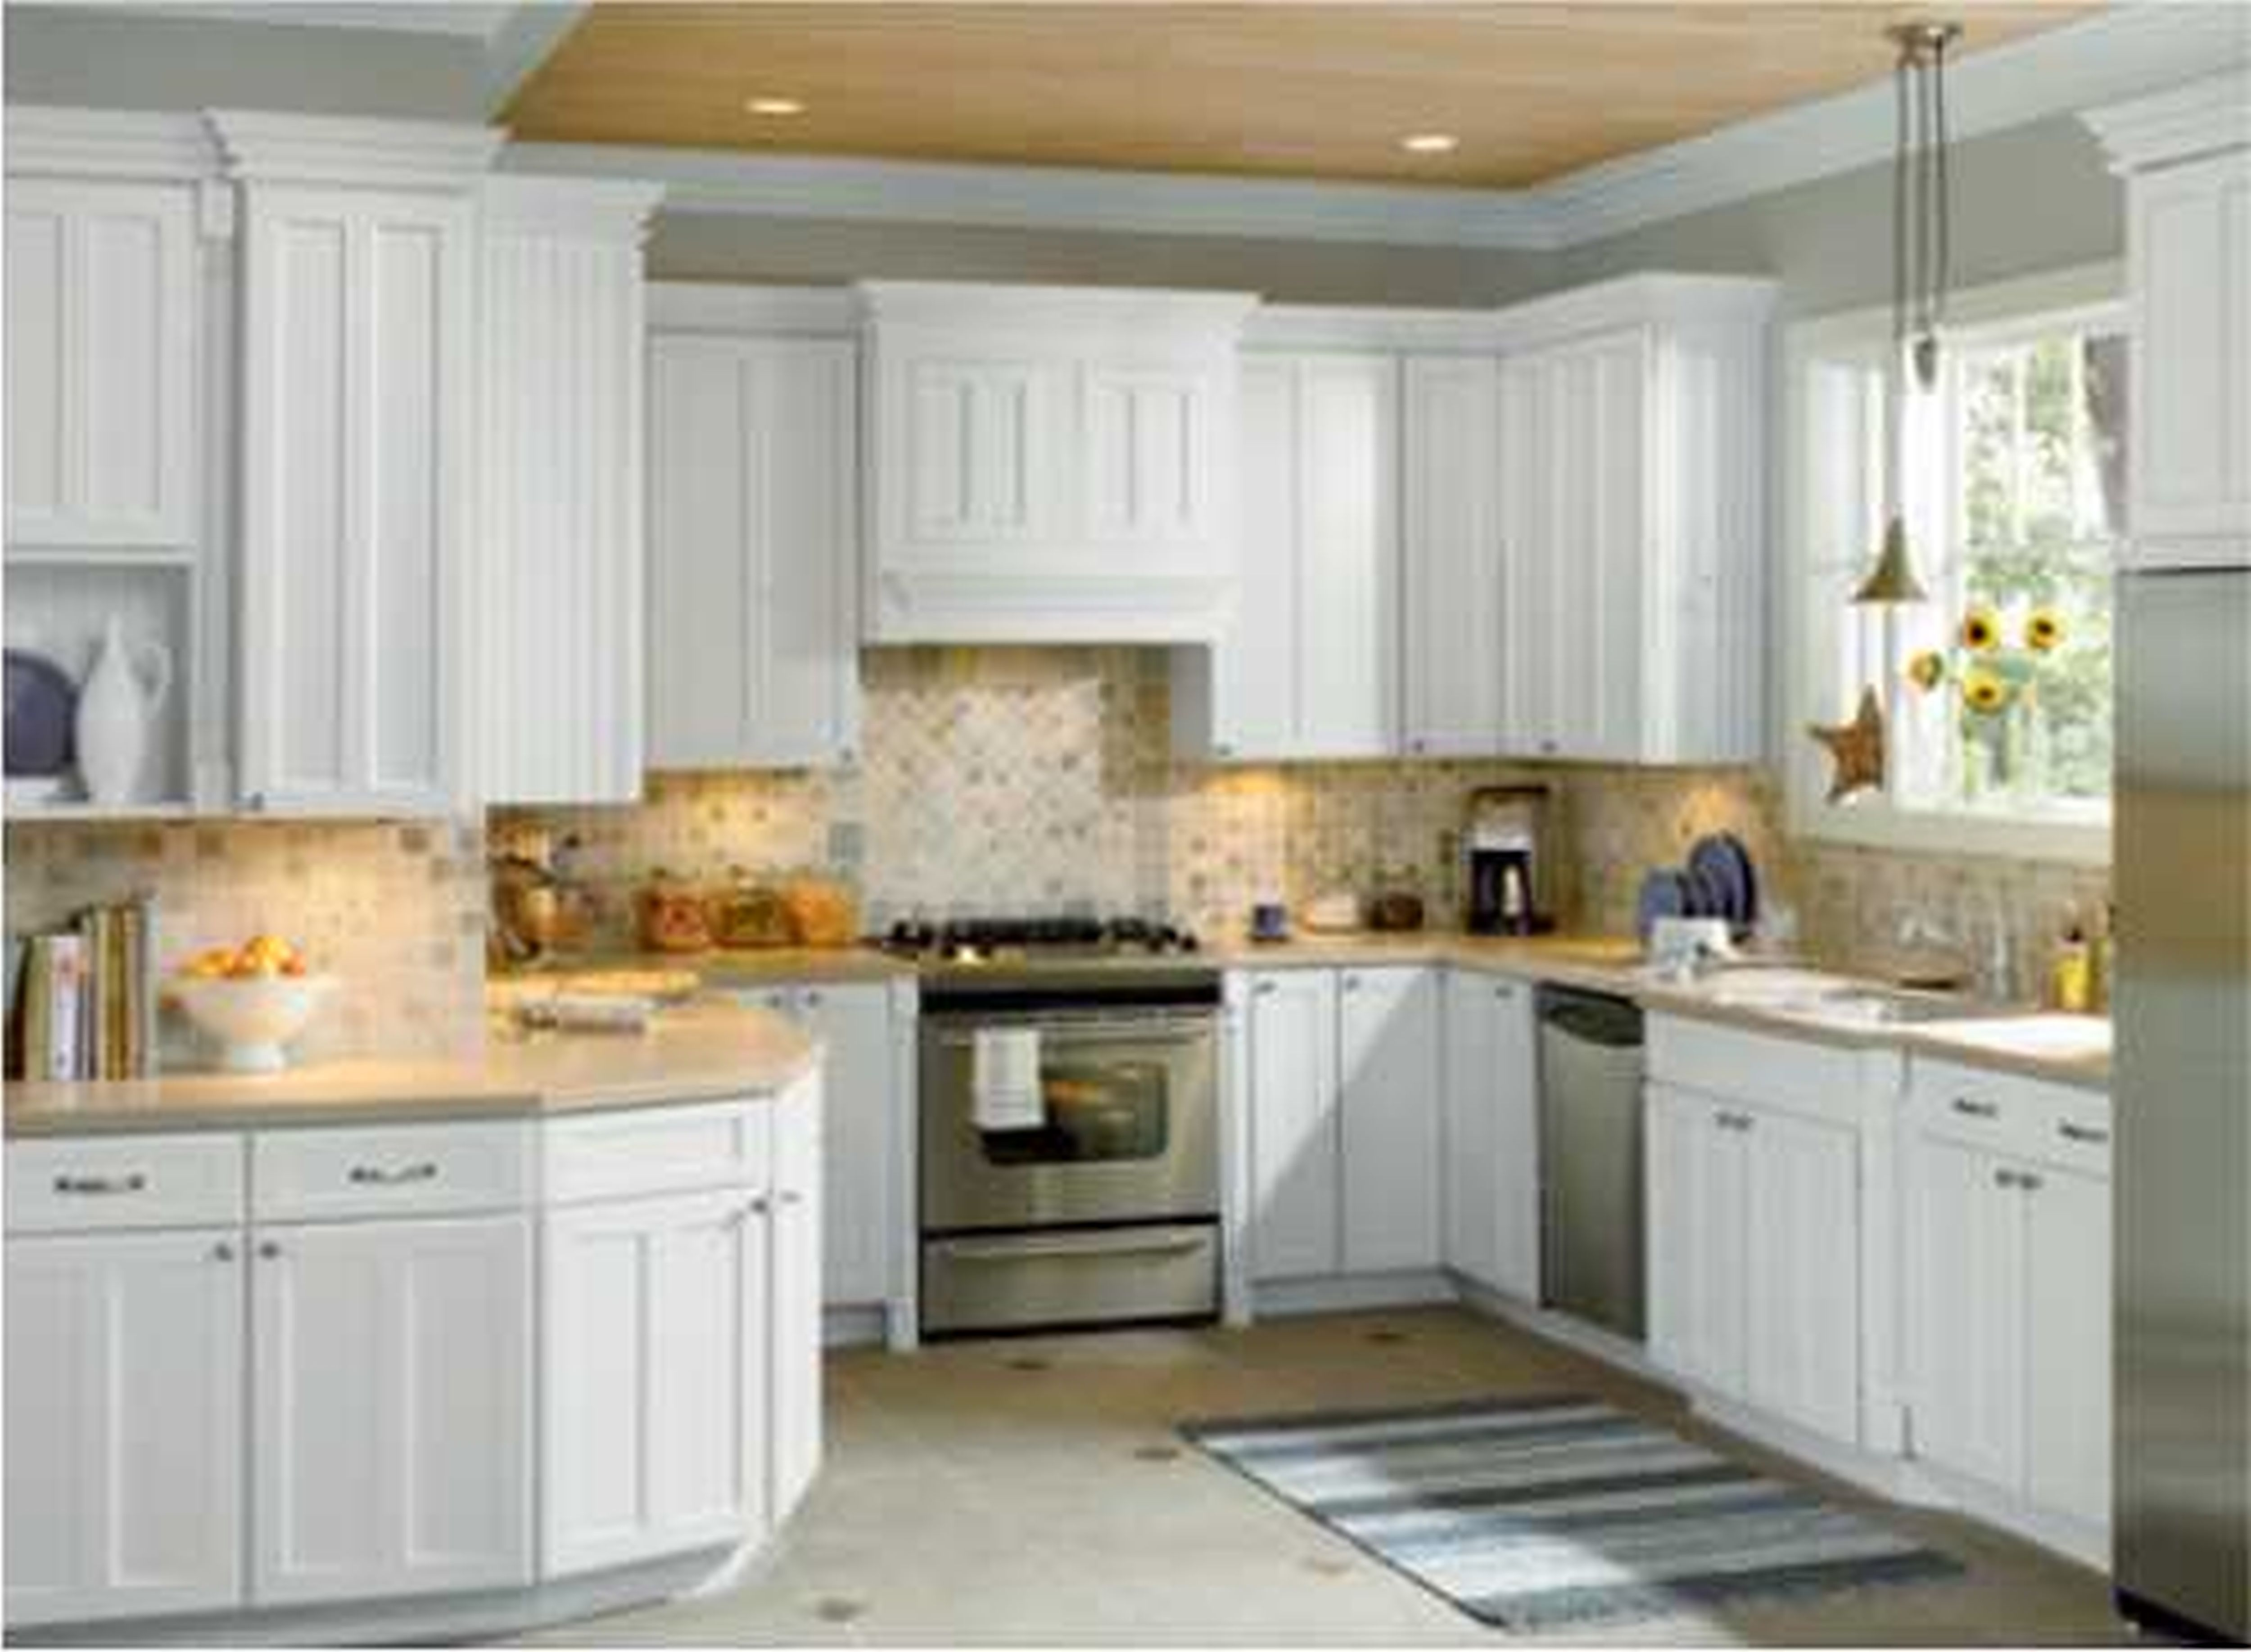 Interior Traditional Style Kitchen Cabinets shaker kitchen cabinets pictures ideas tips from hgtv cabinets